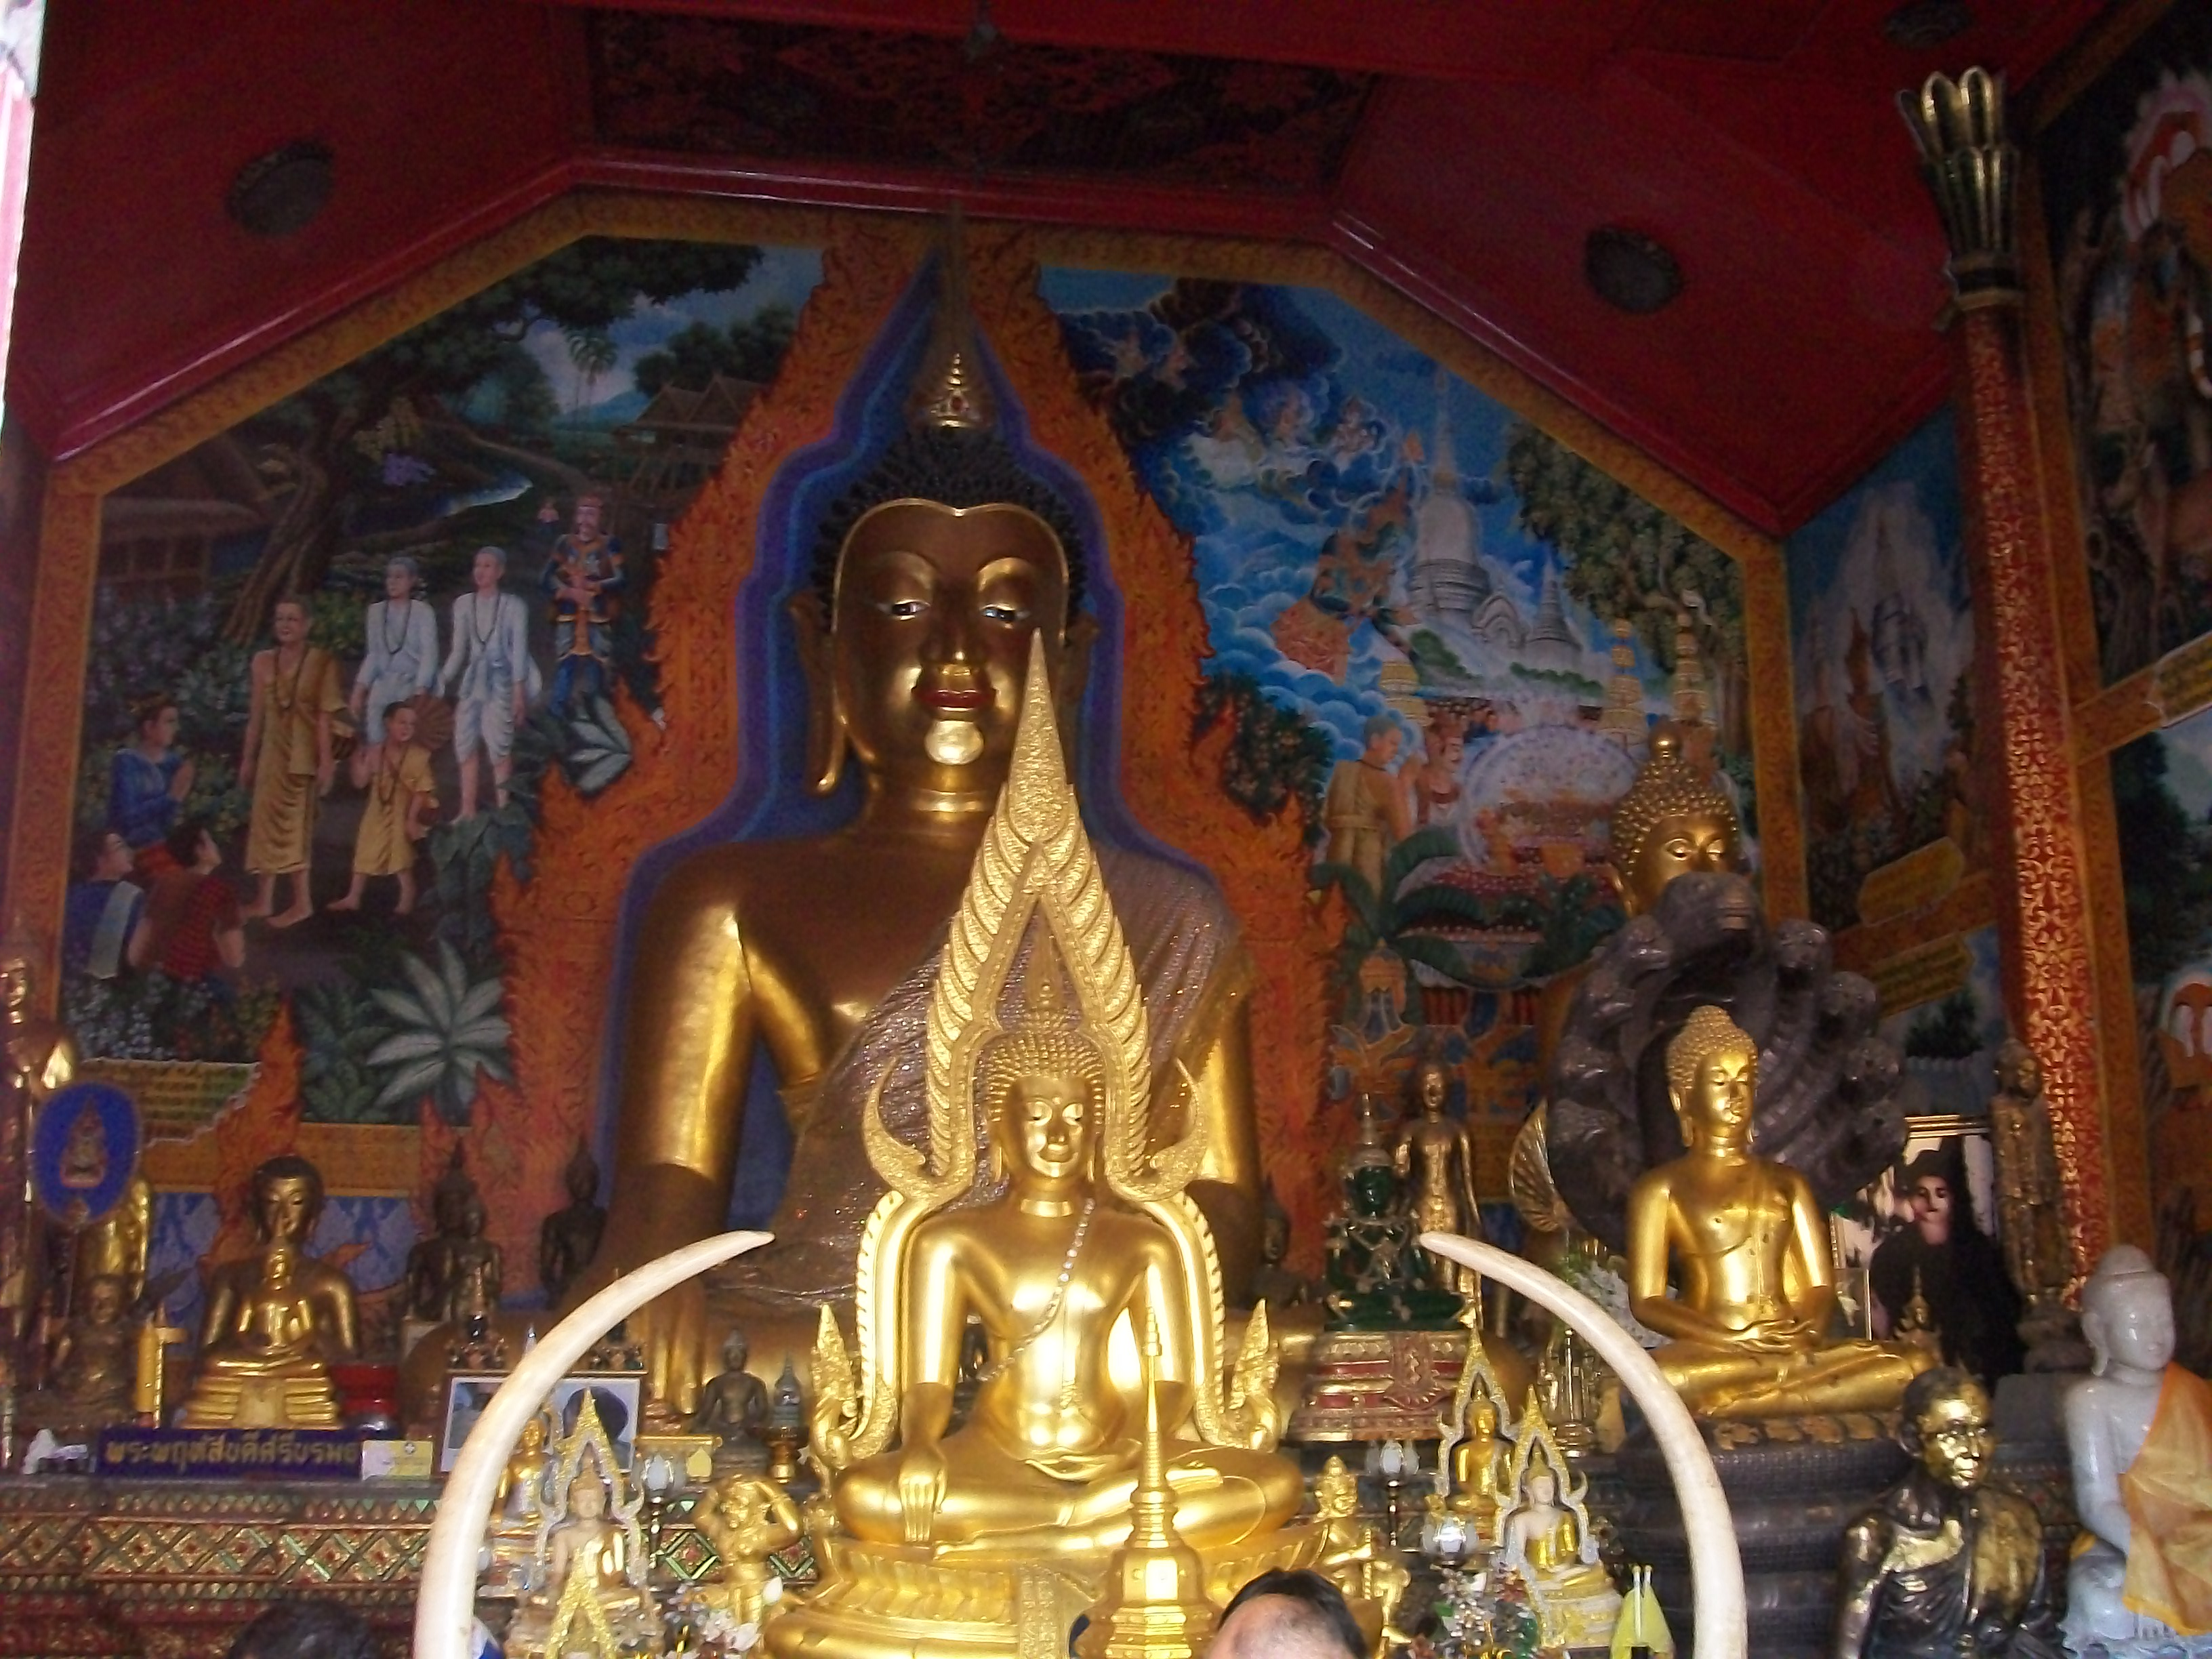 Doi Suthep temple in Chian gmai